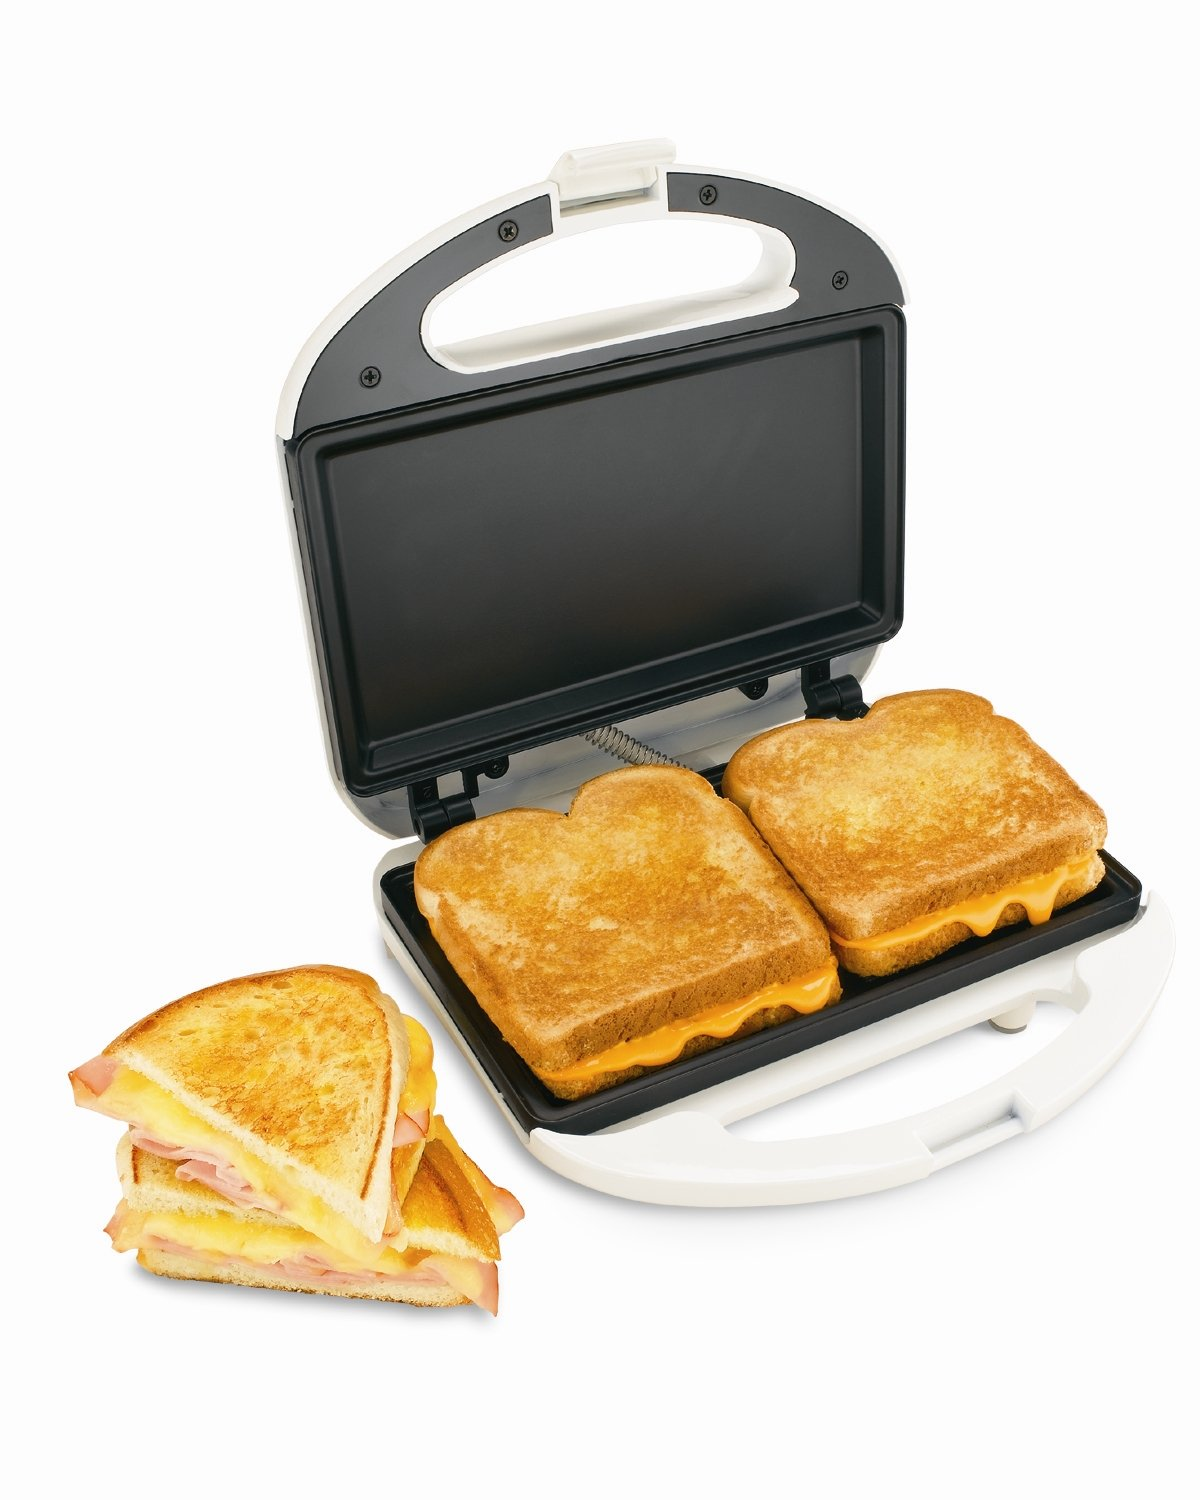 Top 10 Best Sandwich Makers Reviews in 2020 6